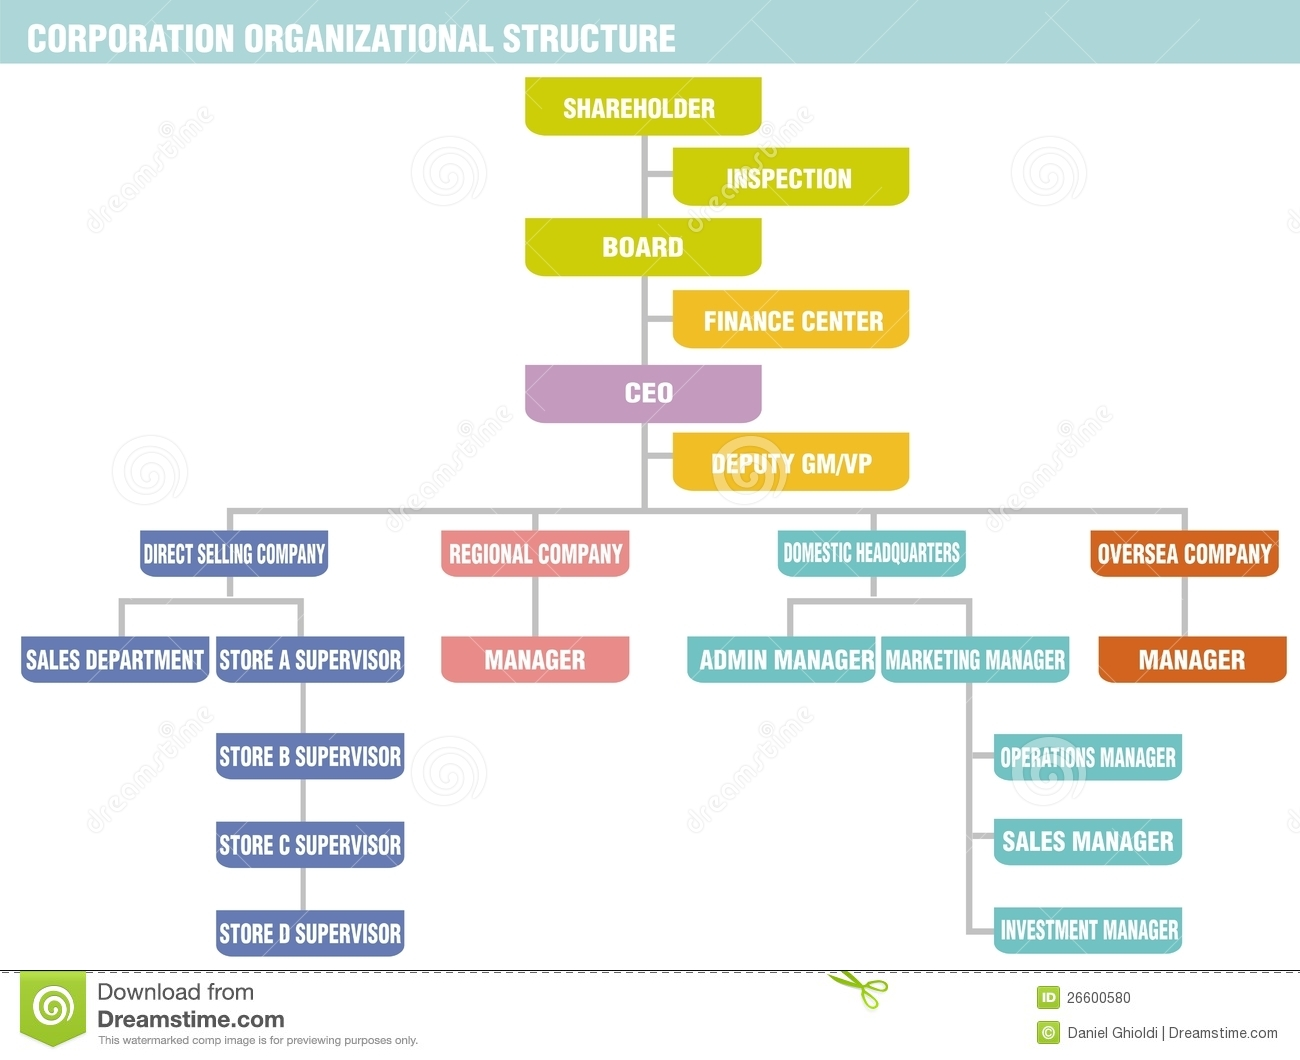 ... organizational structure consists of the shareholder, board of